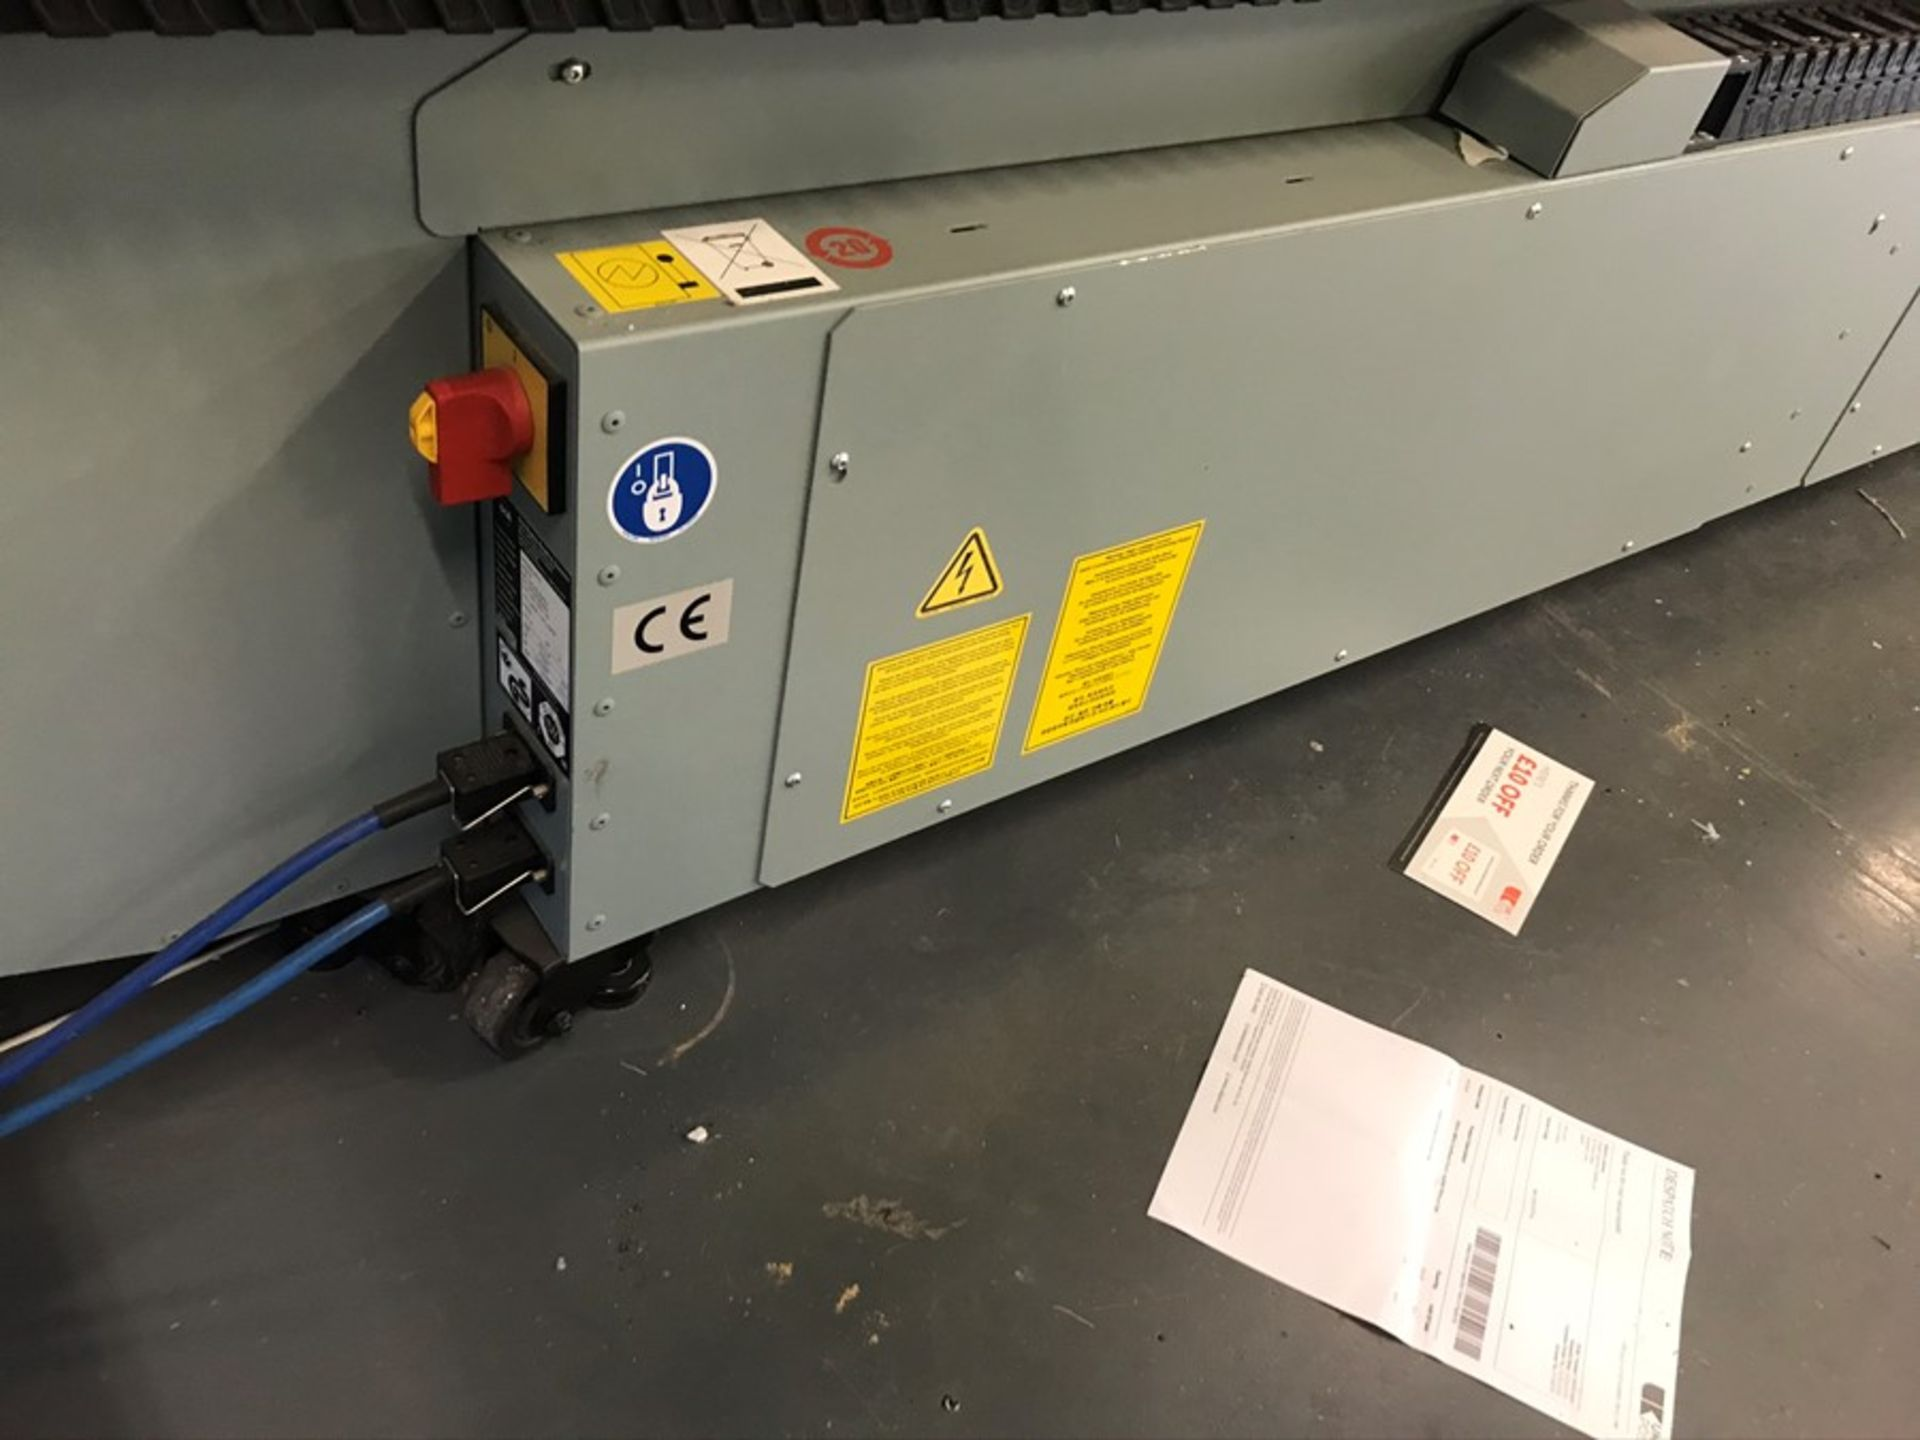 Oce Arizona 660 XT UV flatbed printer (2015) - Image 4 of 22